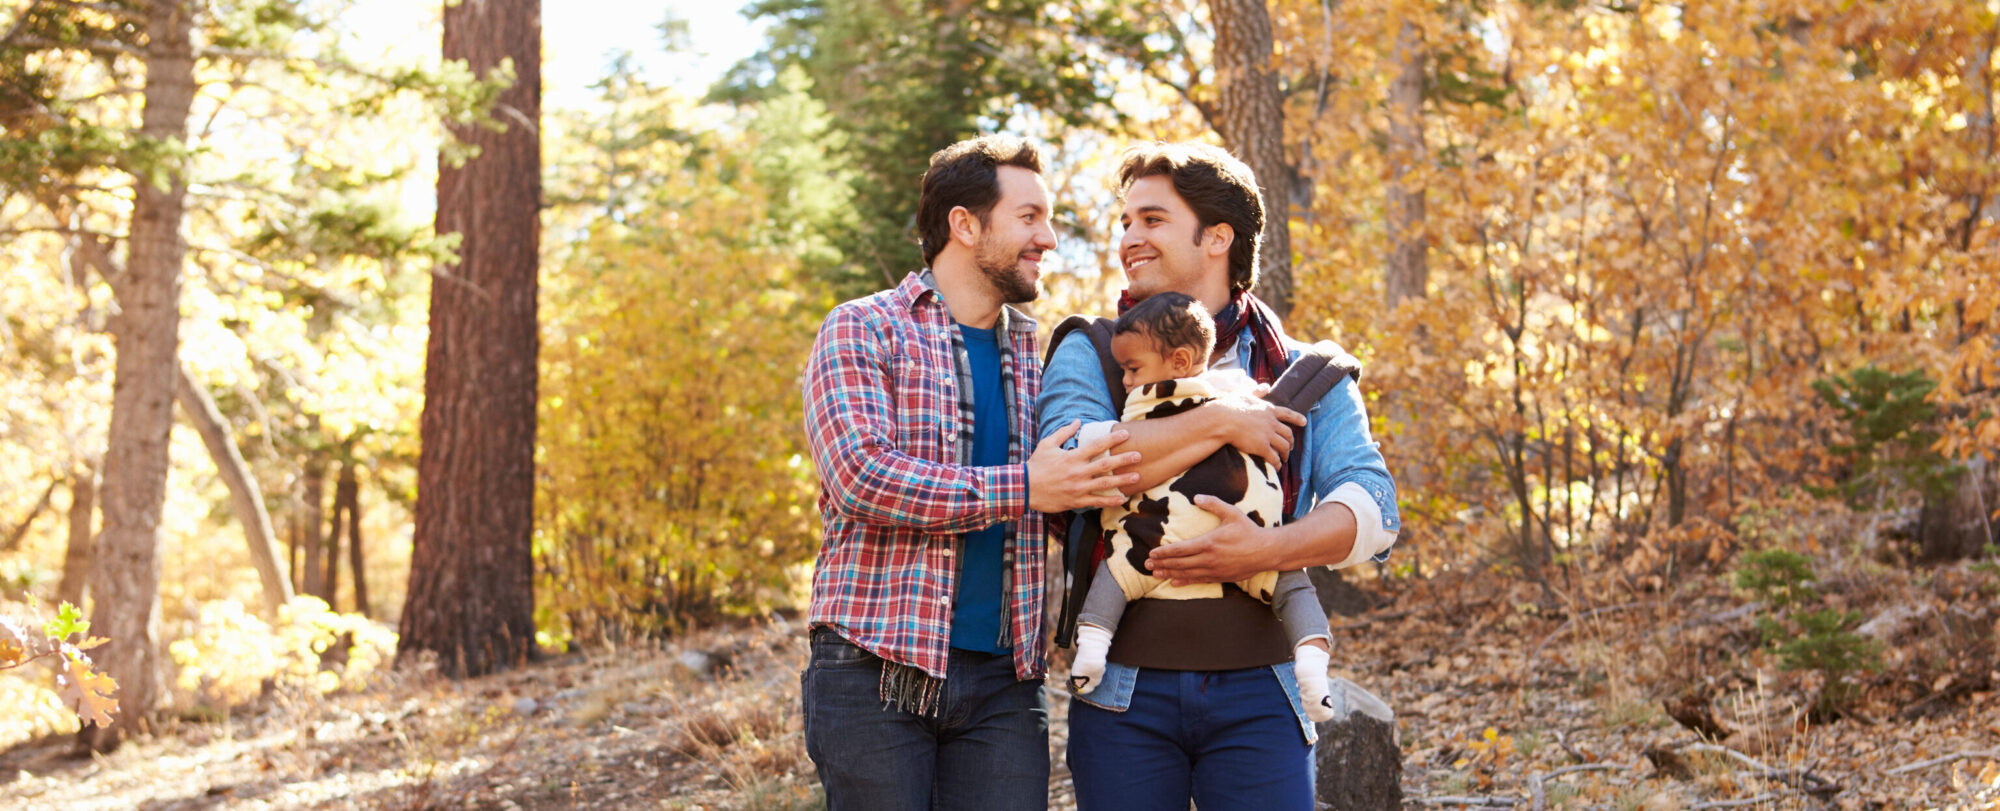 LGBTQ+ couple walking with baby